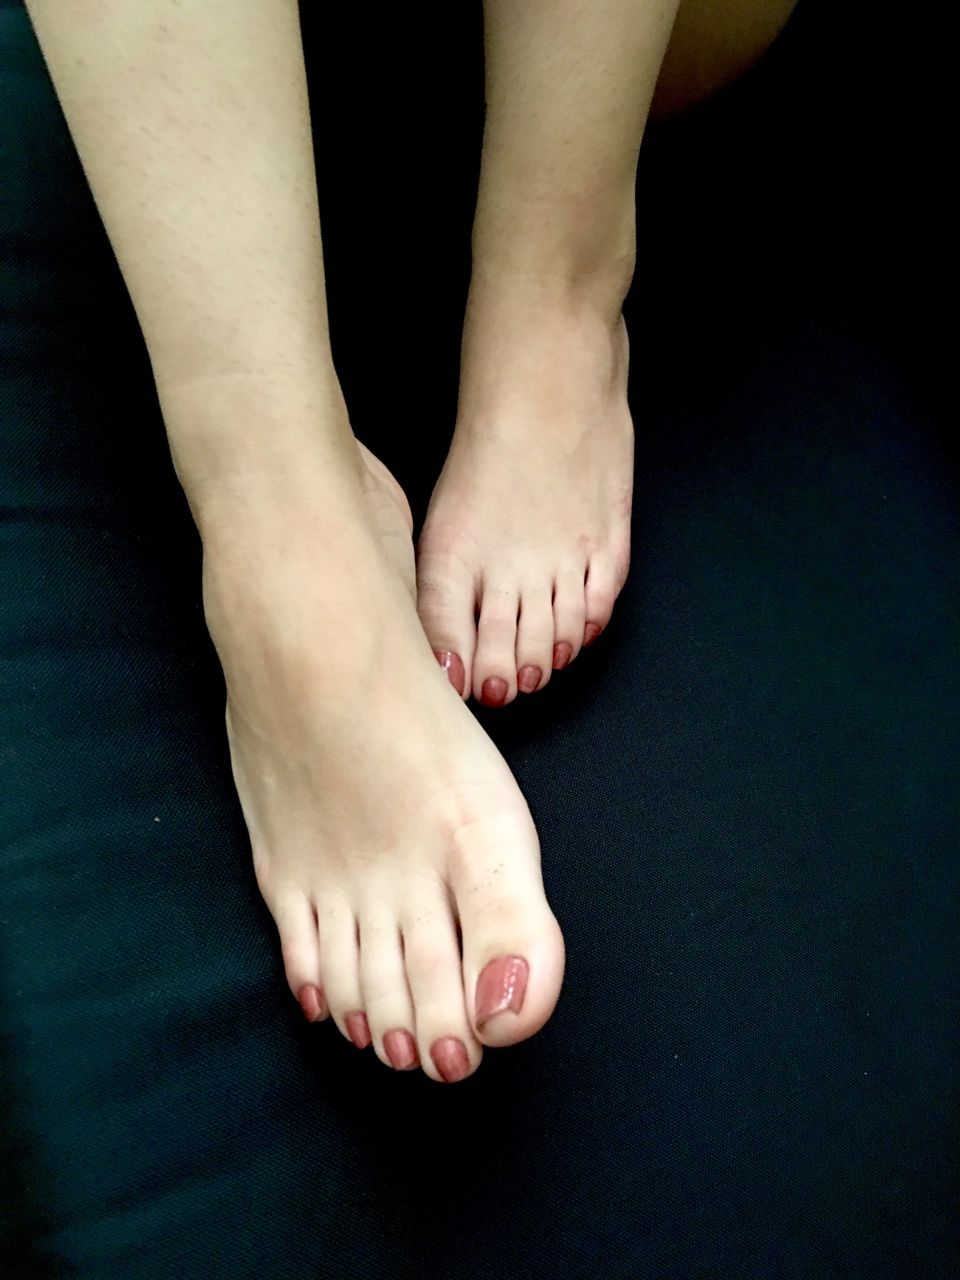 Female feet and toes